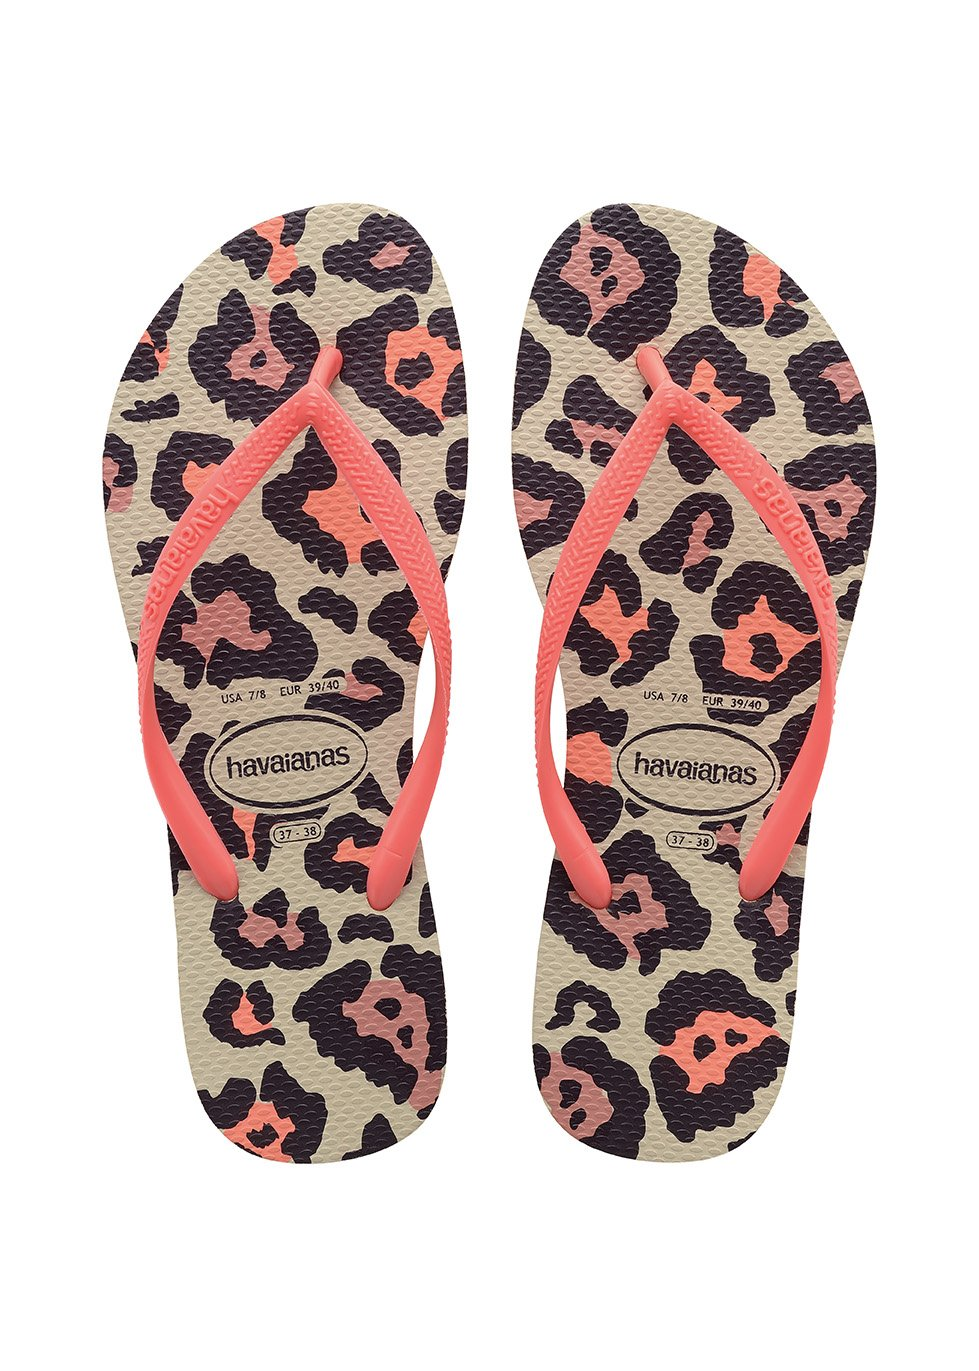 Havaianas Multicolore Tongs Femme Slim Animals Multicolore B01FWGPUM4 (Beige/Coral New 9378) 9378) 2107792 - fast-weightloss-diet.space